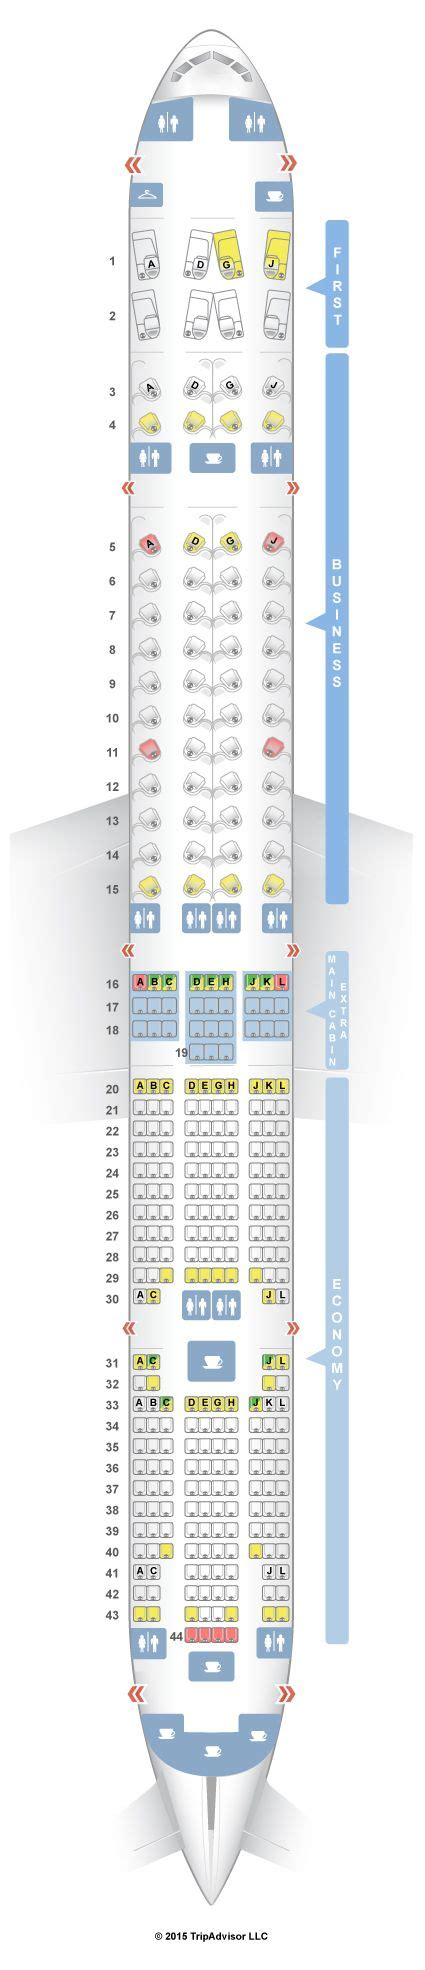 plan si鑒es boeing 777 300er 1000 ideas about boeing 777 300er seating on